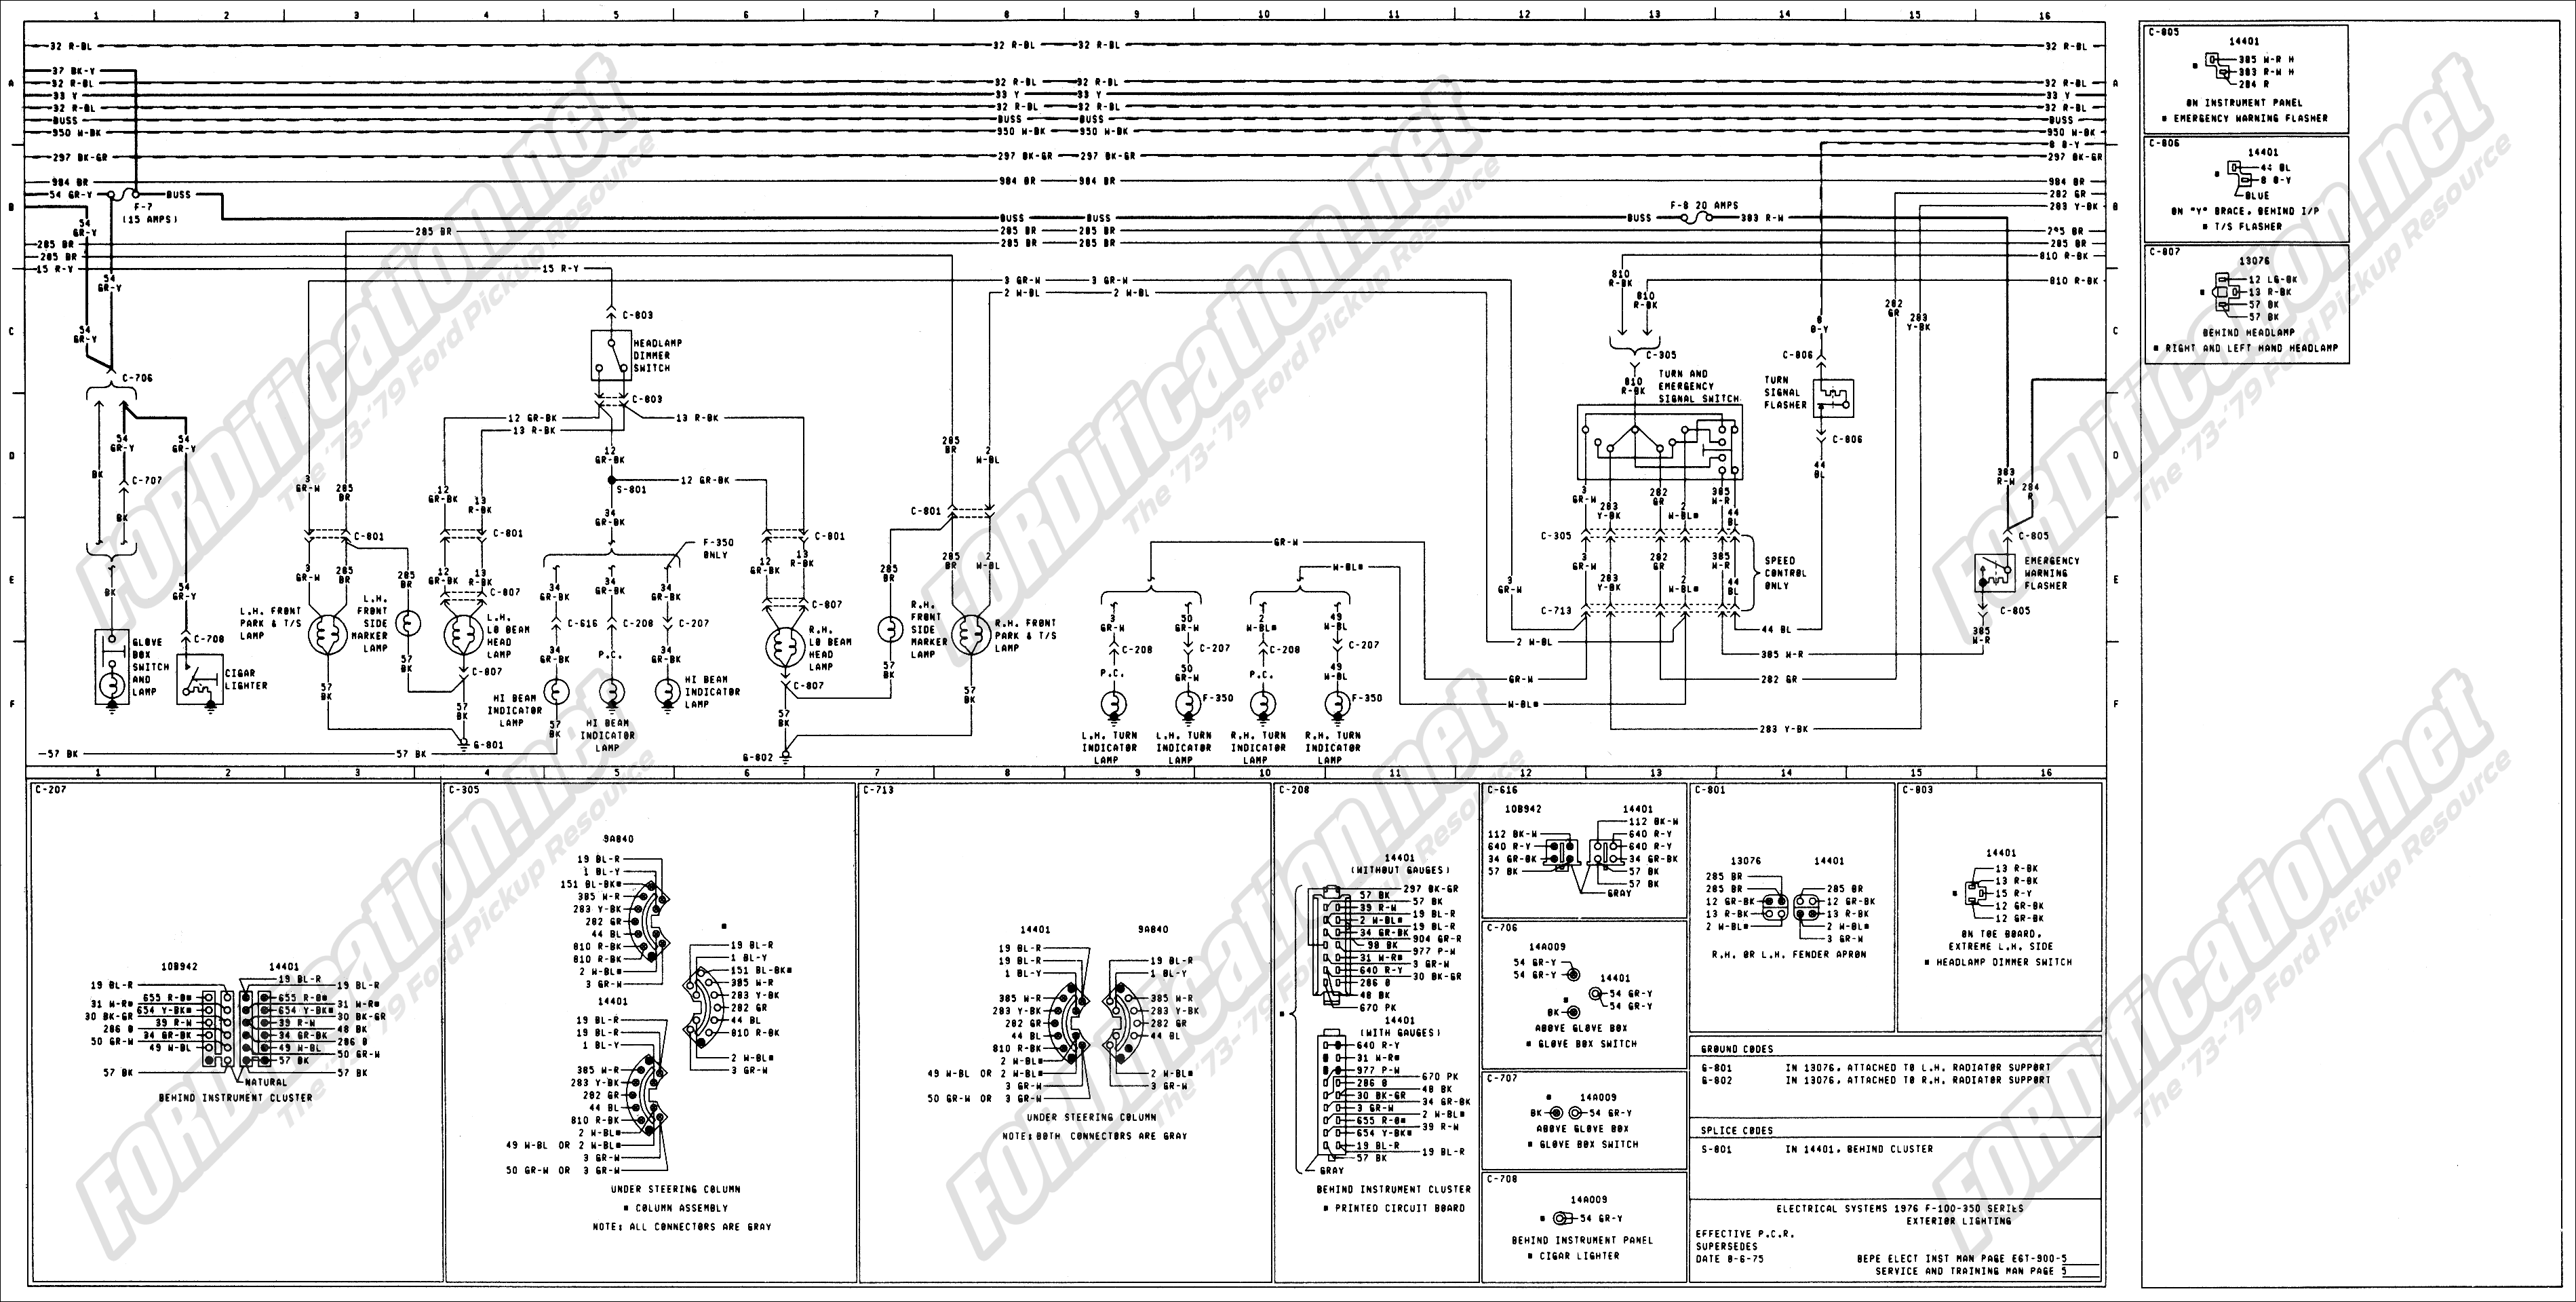 1977 ford f 250 wiring diagram data wiring diagram1973 1979 ford truck wiring diagrams \u0026 schematics fordification net 1993 ford f 250 wiring diagram 1977 ford f 250 wiring diagram